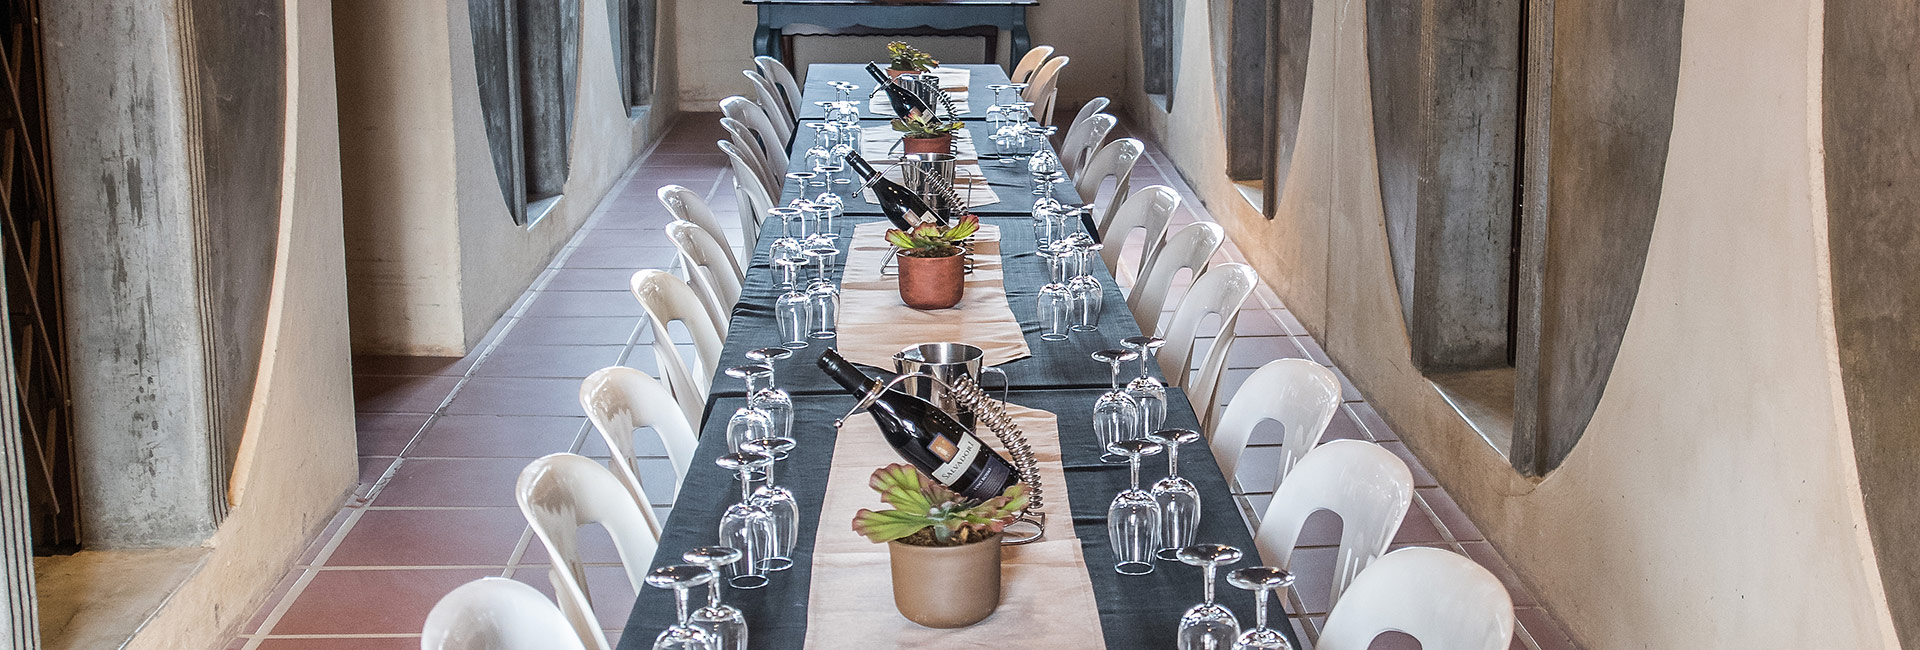 Wine Tasting Table Setting | Robertson Countryside Escape | Wederom Wedding Venue